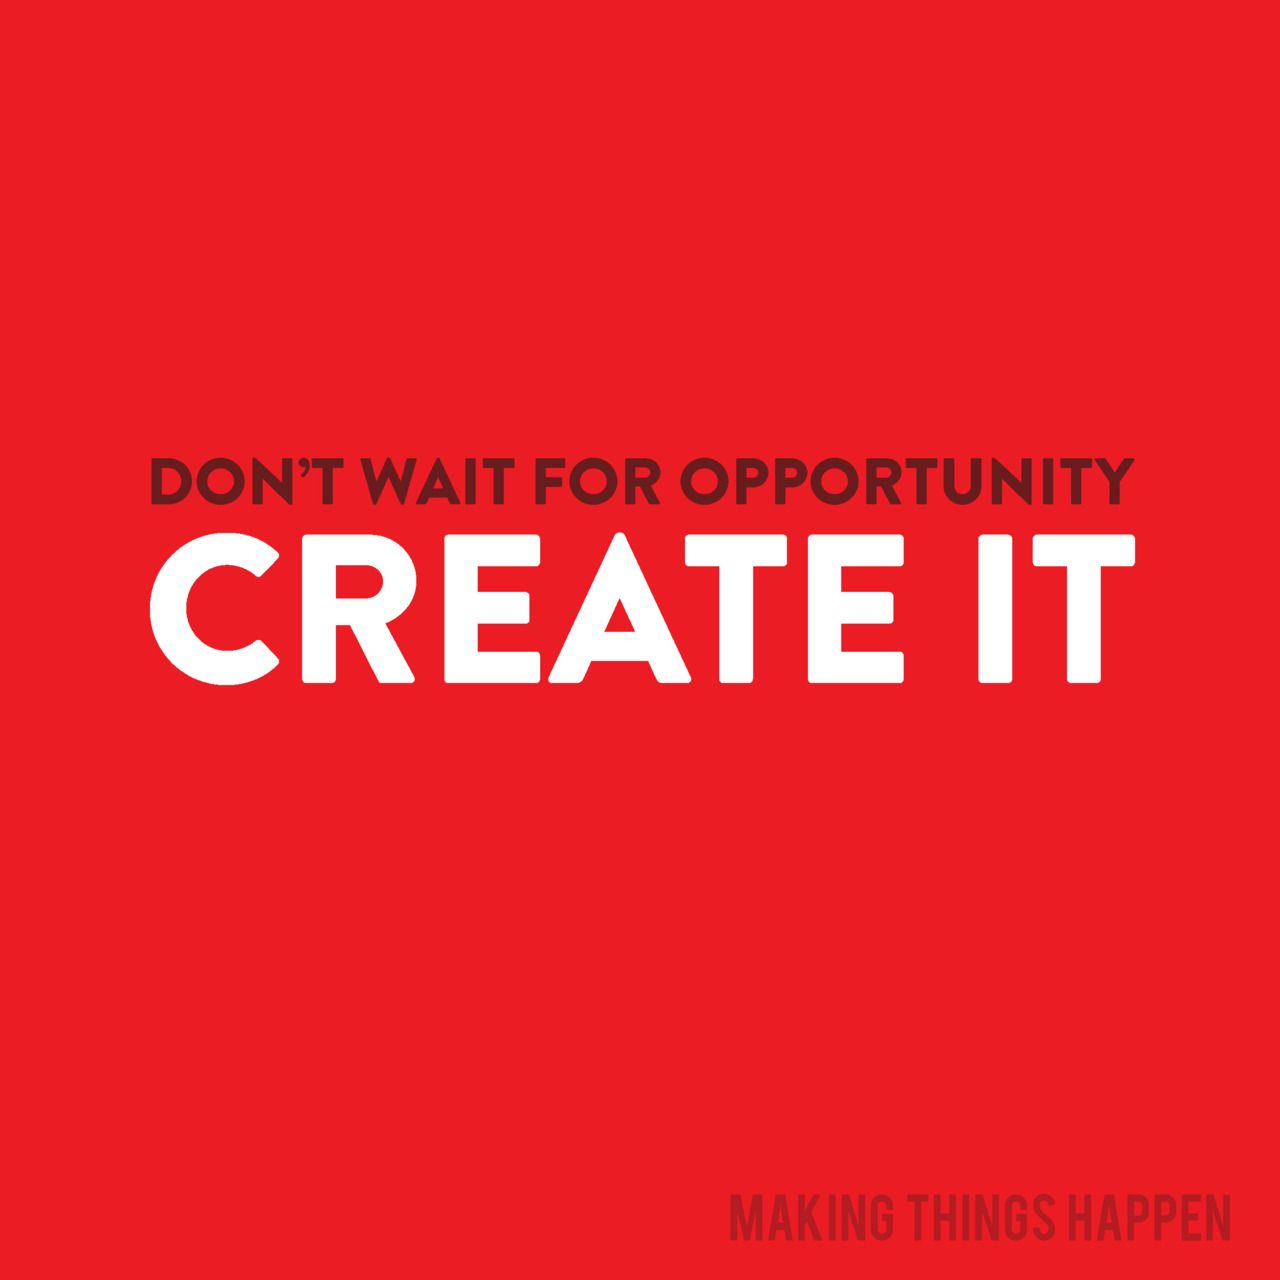 b7424d3fde8d9dae240a198d503a03d0 don't wait for opportunity create it inspirations pinterest